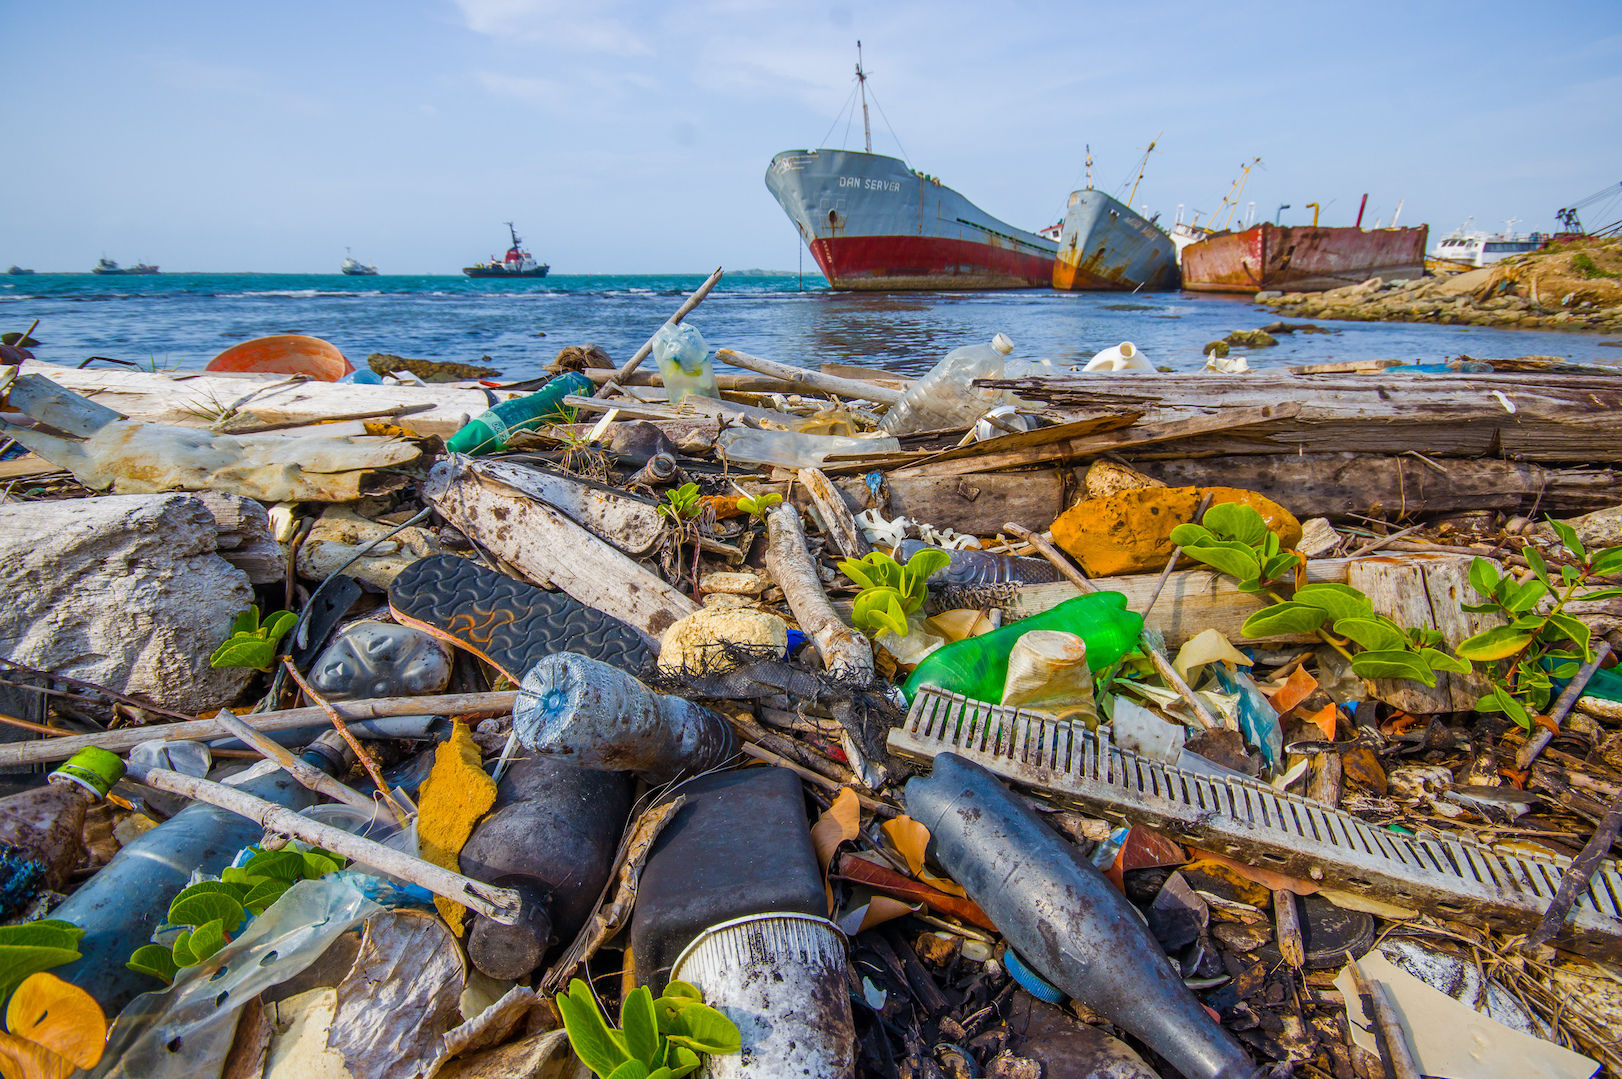 A troubling new study has found plastic particles in 73 percent of deep sea fish in the northwest Atlantic Ocean.